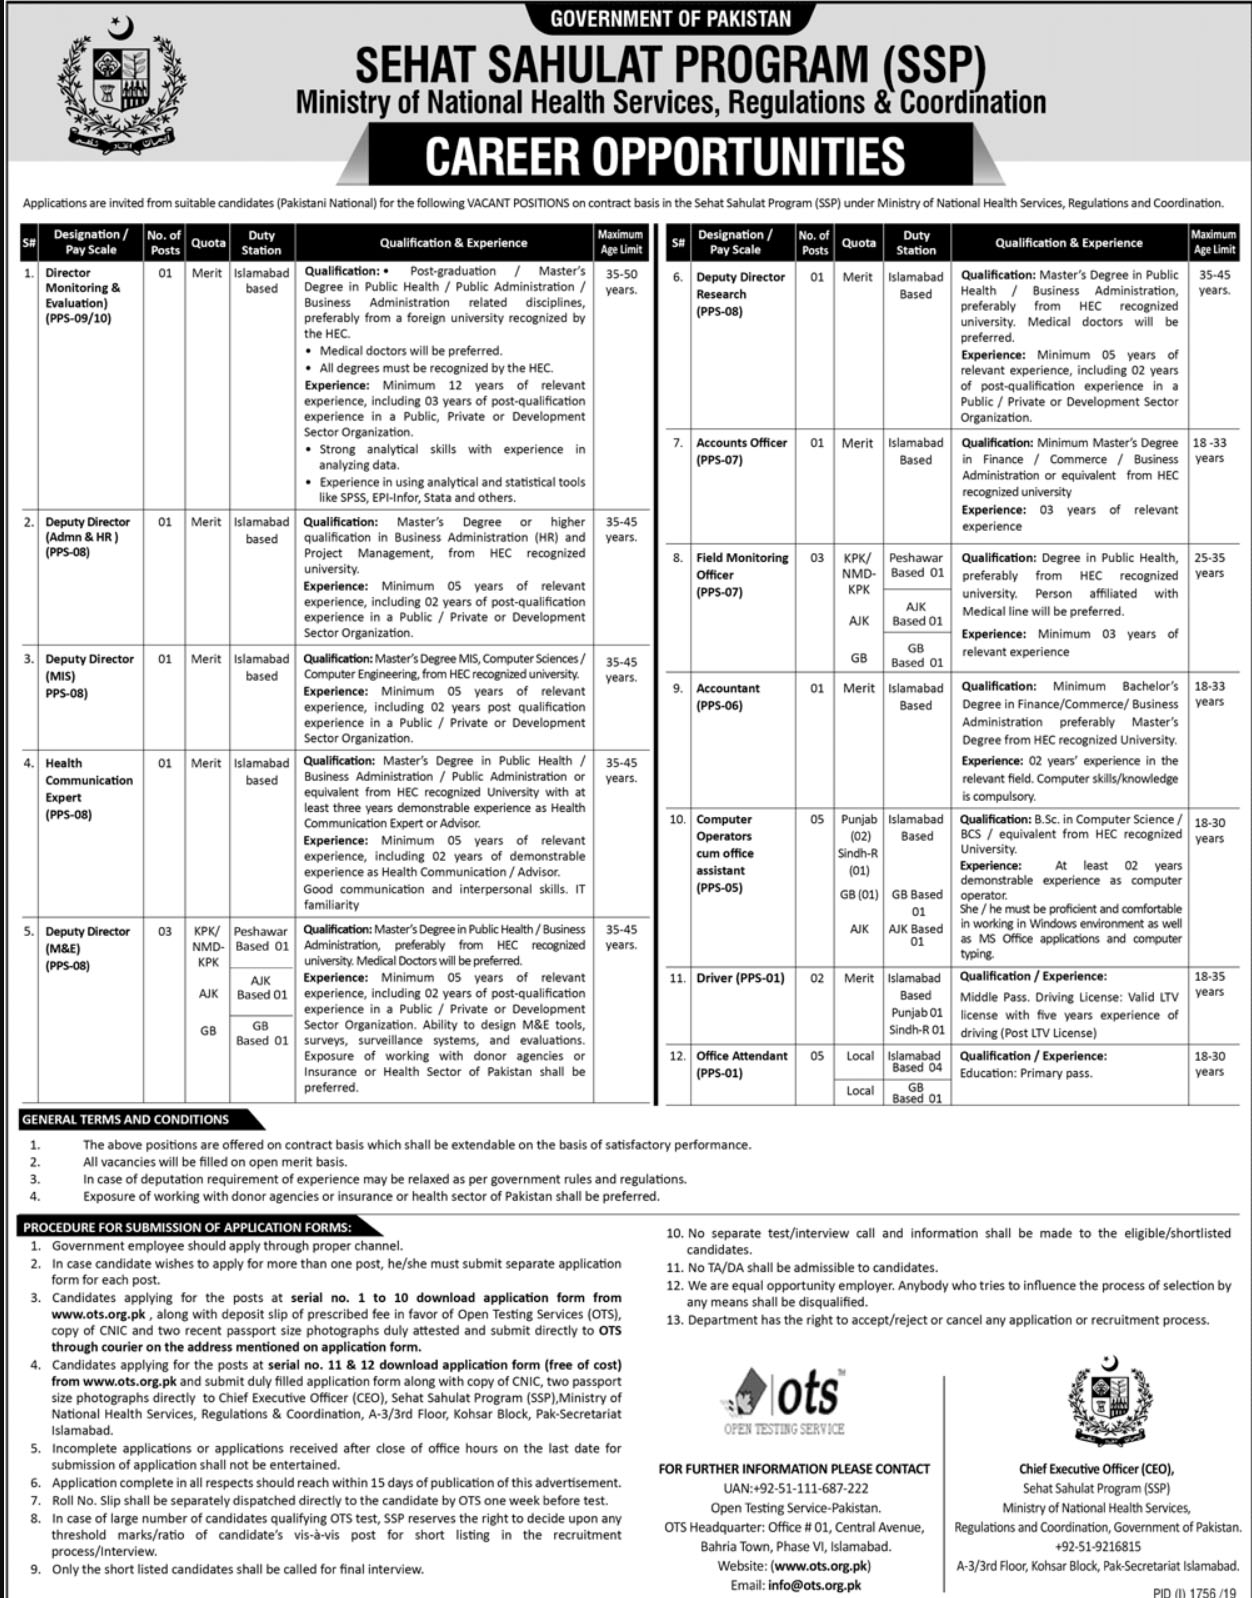 Jobs in Sehat Sahulat Program (SSP) Oct 201